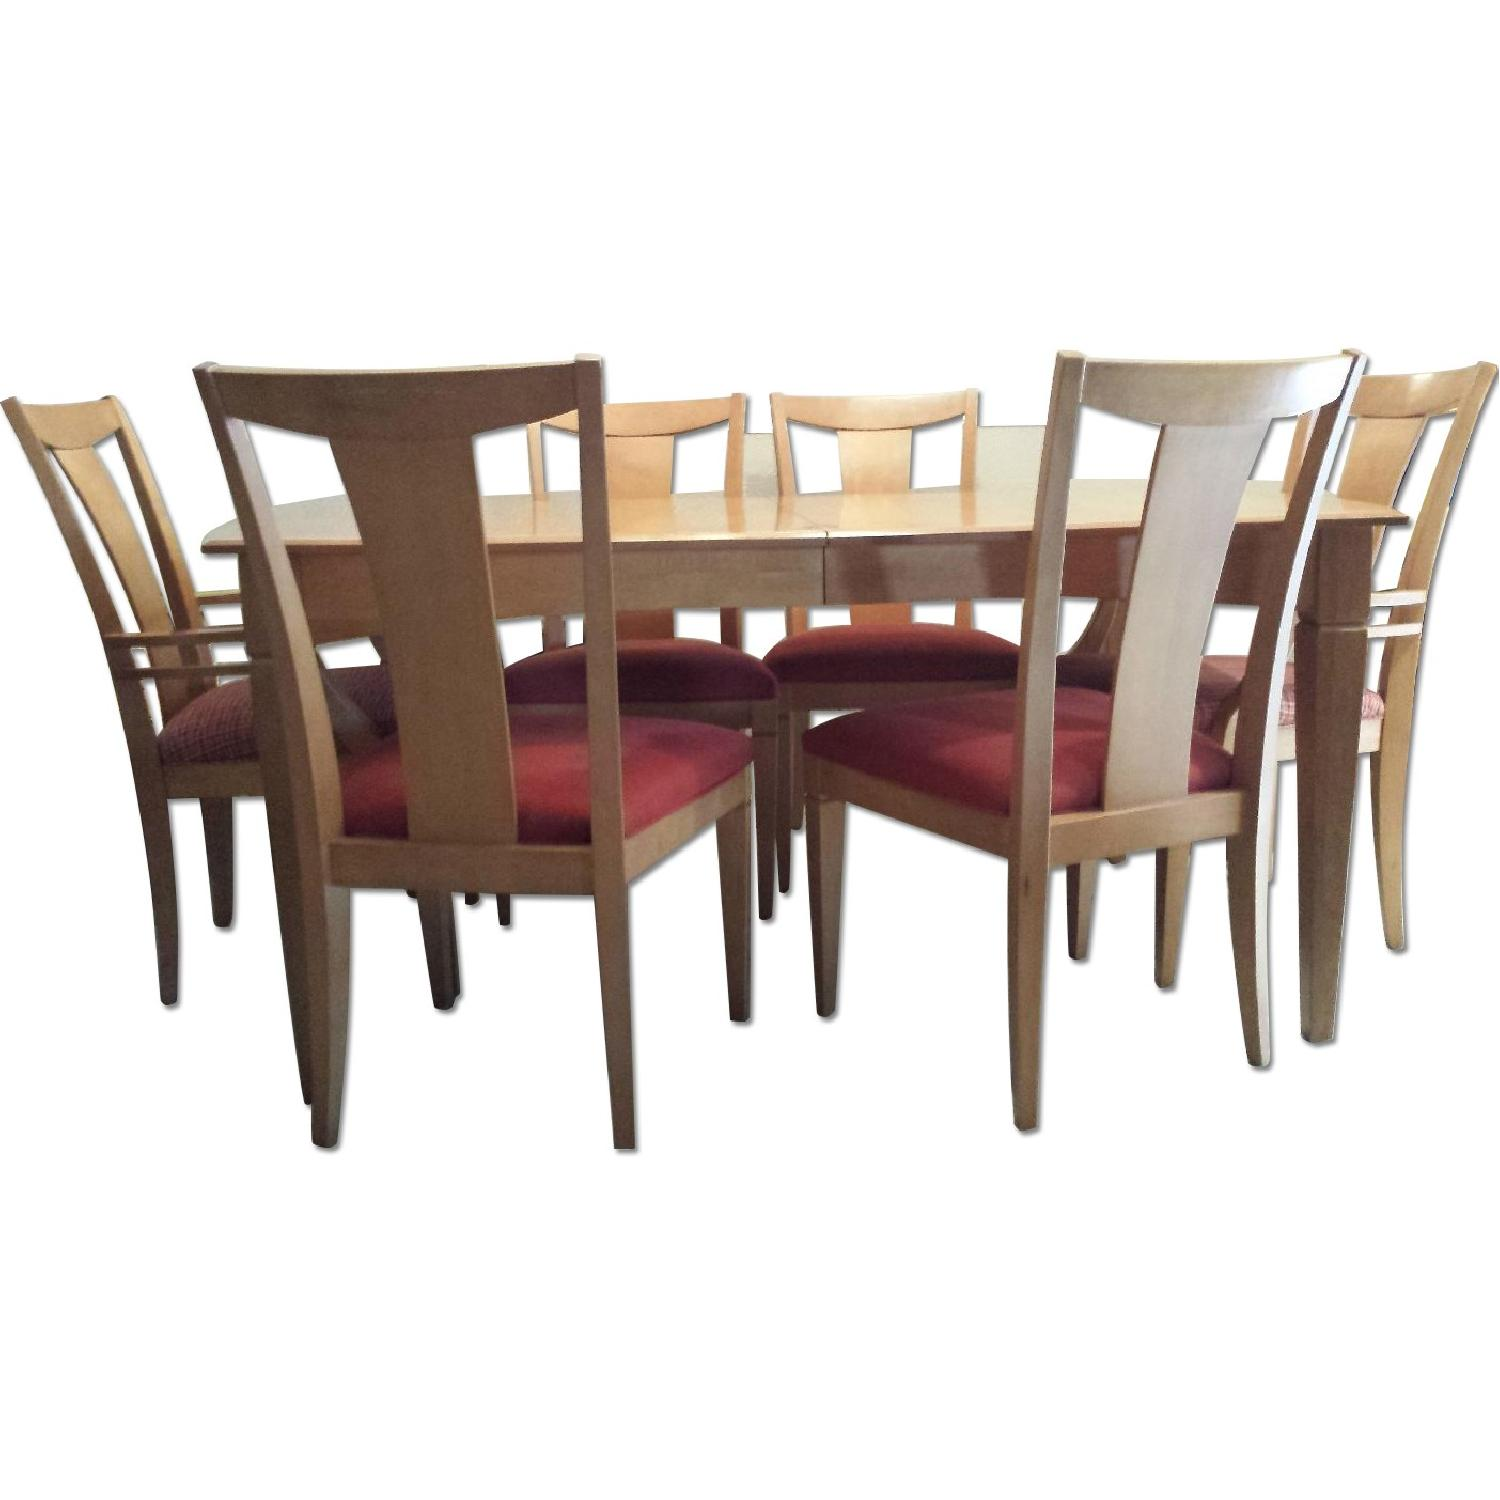 Ethan Allen Maple Dining Room Table W/ 6 Chairs